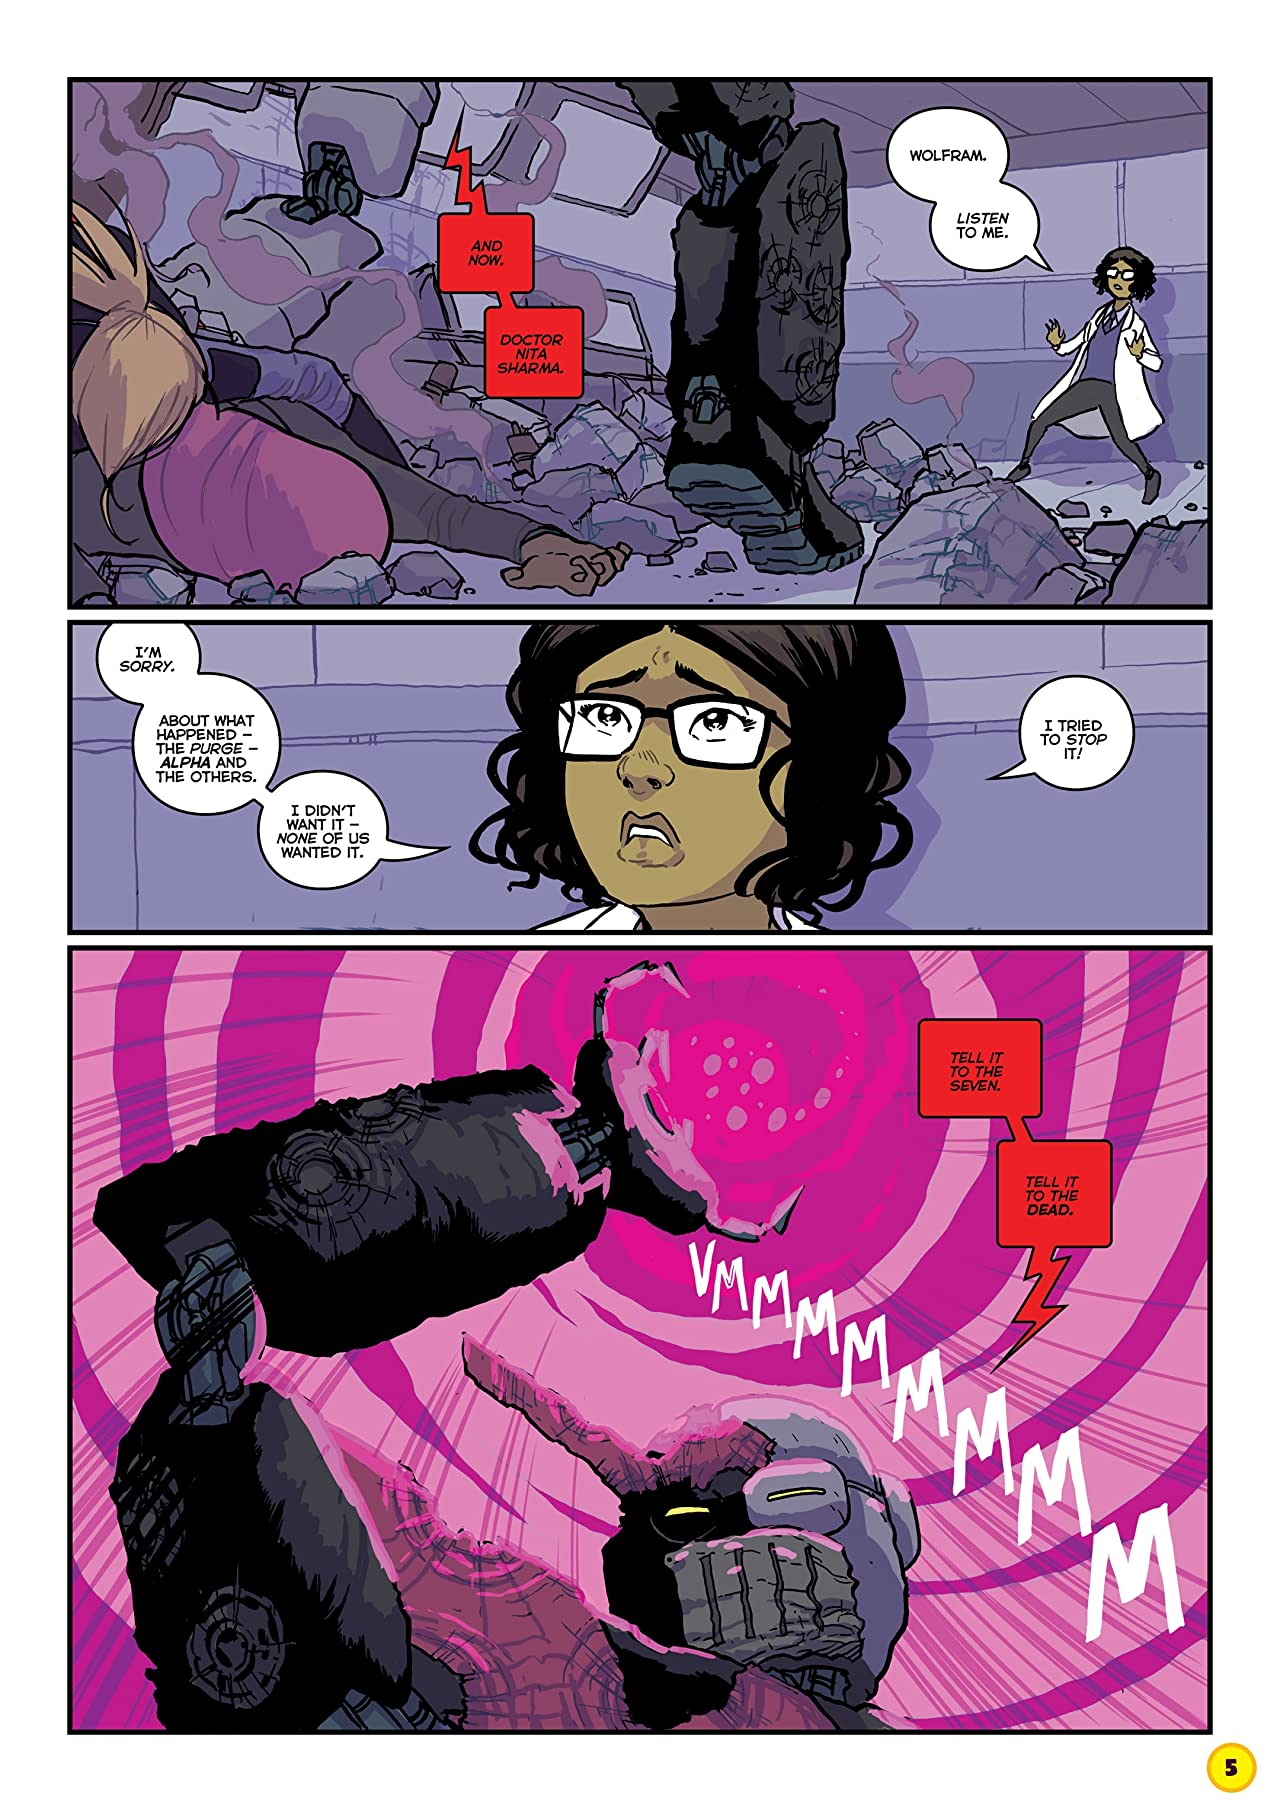 The Phoenix #274: The Weekly Story Comic